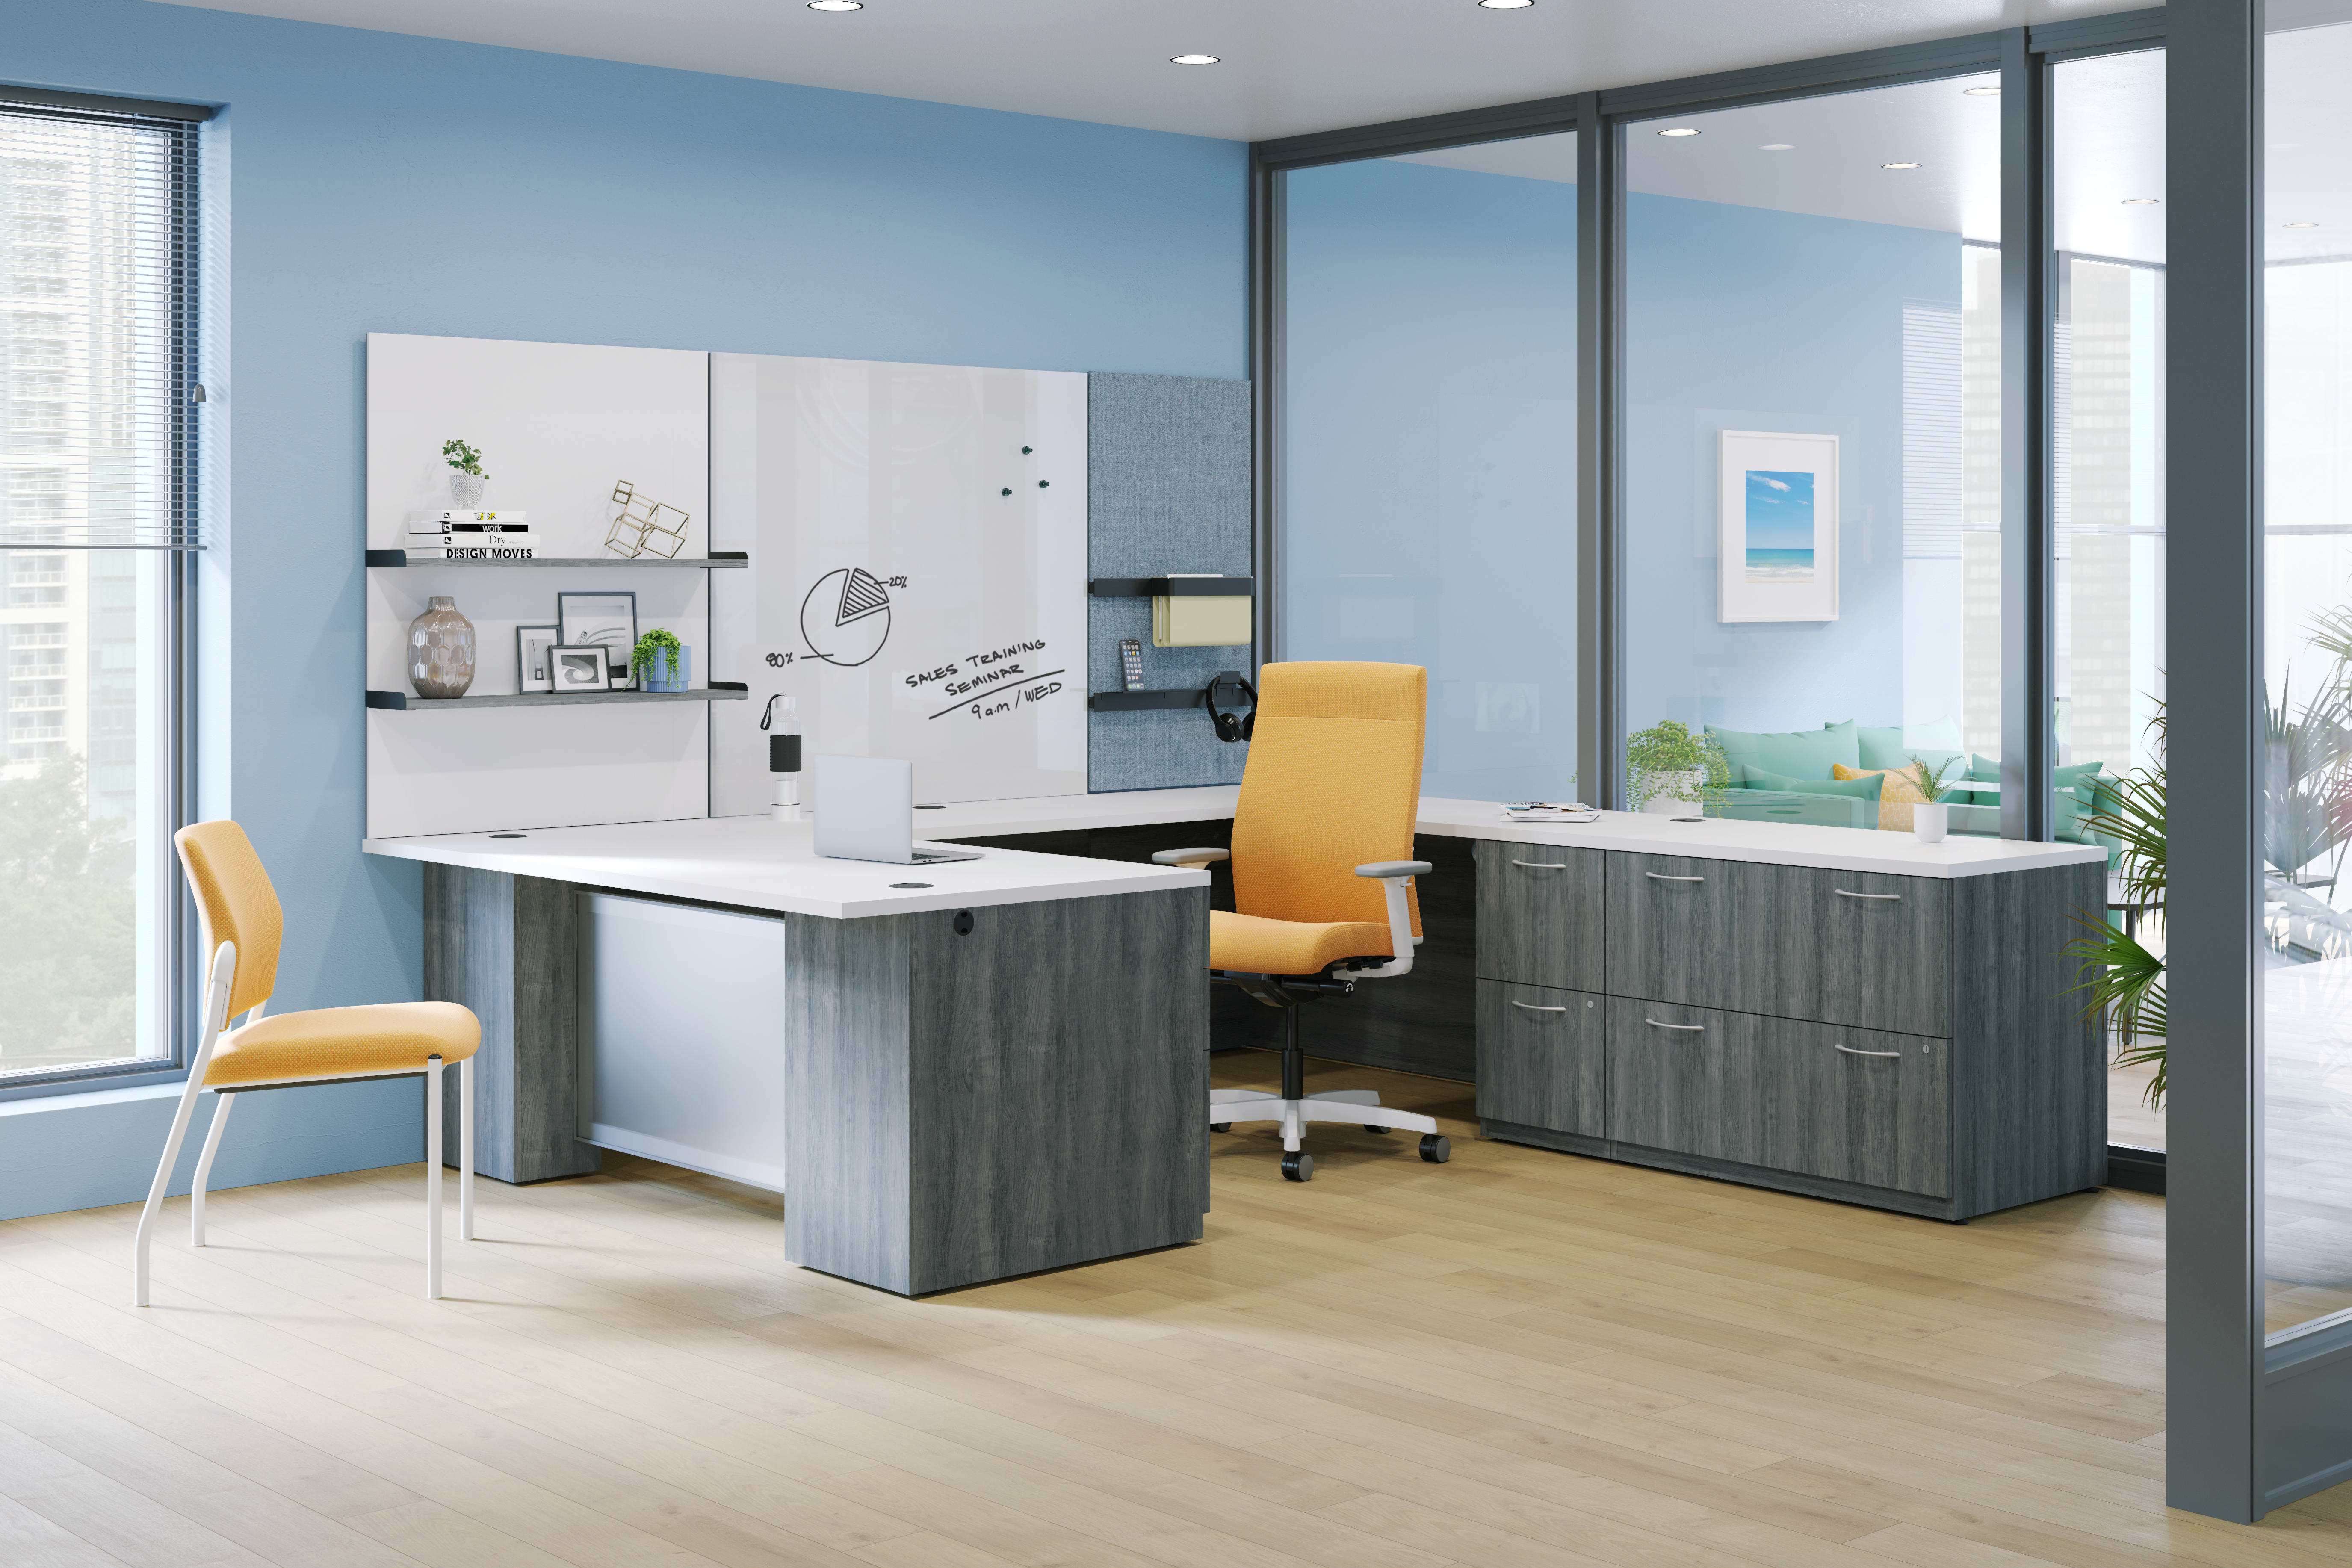 Concinnity Private Office with Workwall tiles and Ignition seating